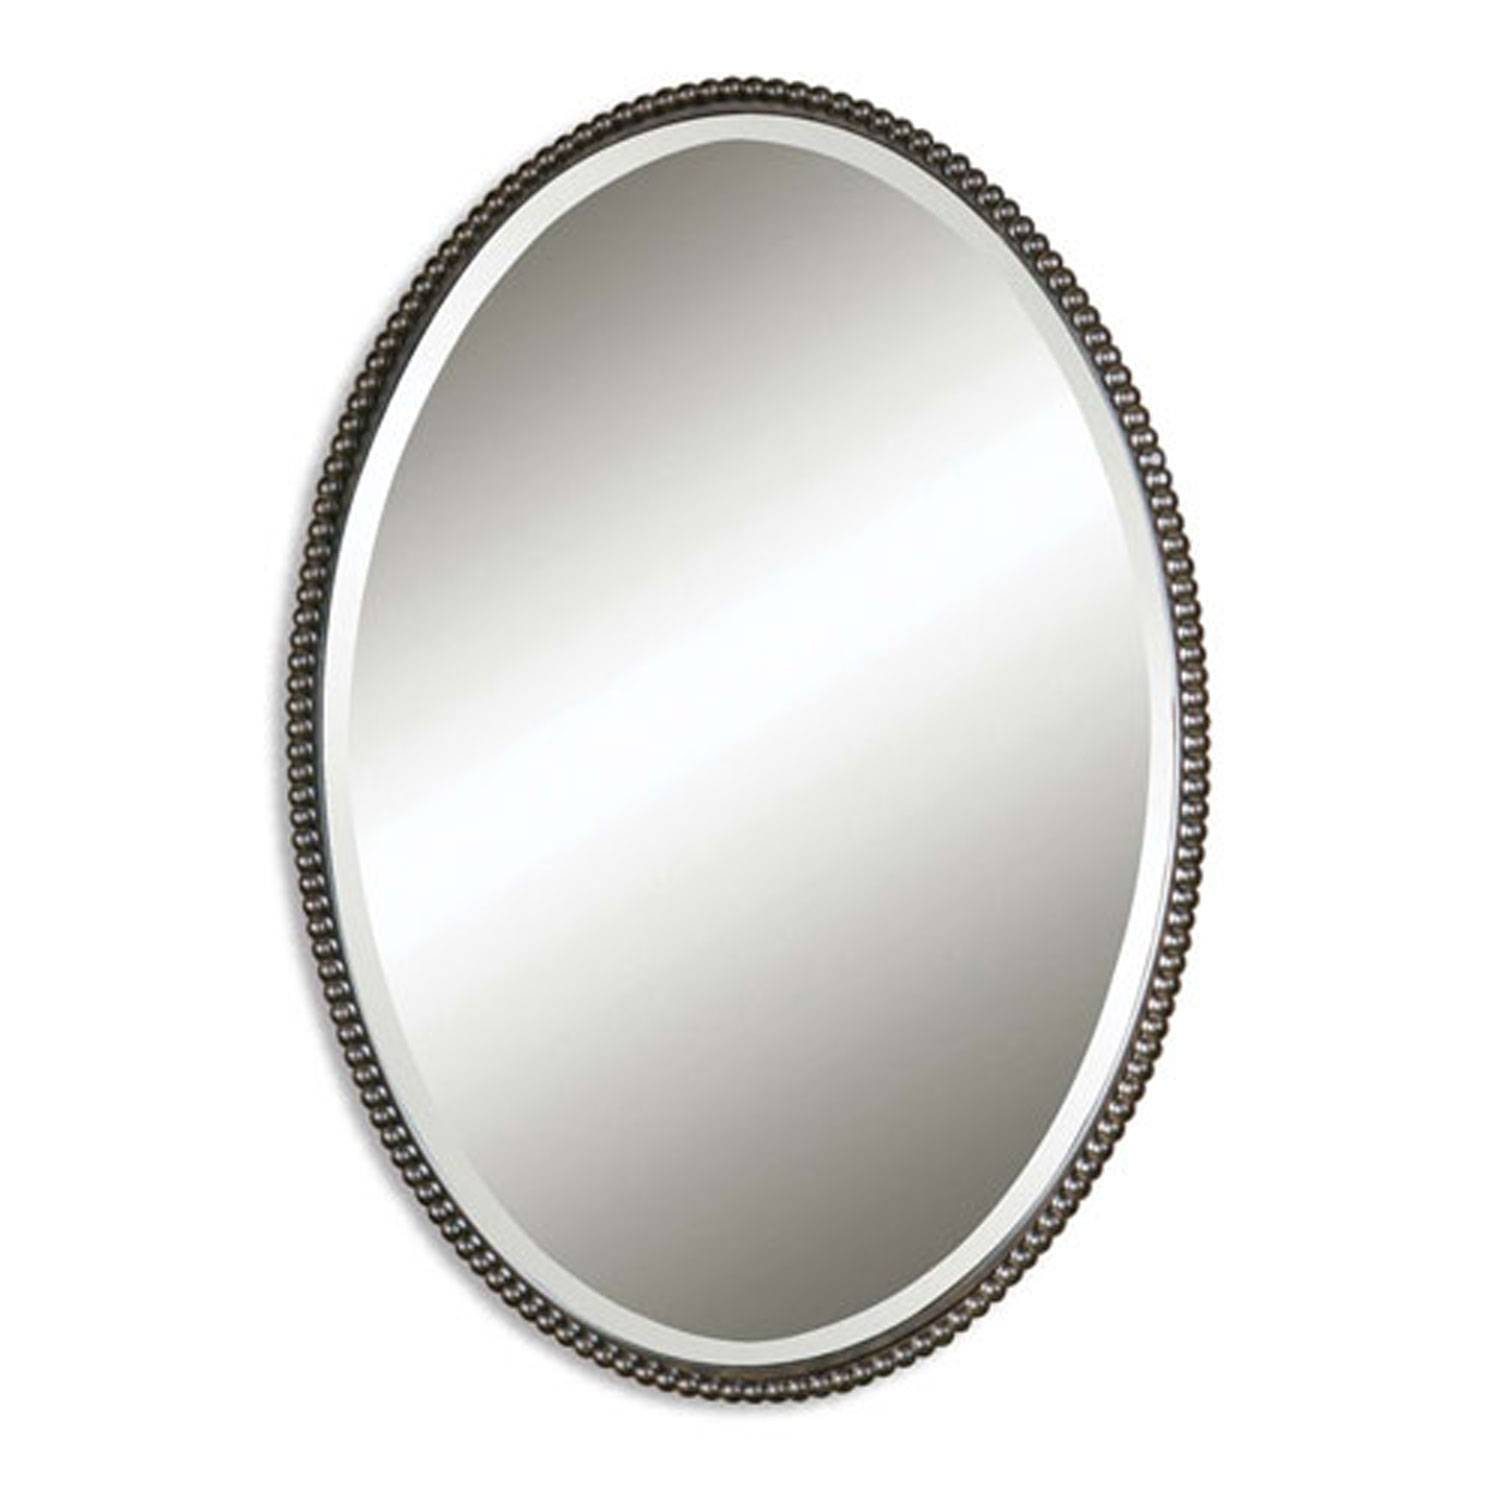 Sherise Oval Mirror Uttermost Wall Mirror Mirrors Home Decor in Oval Silver Mirrors (Image 20 of 25)